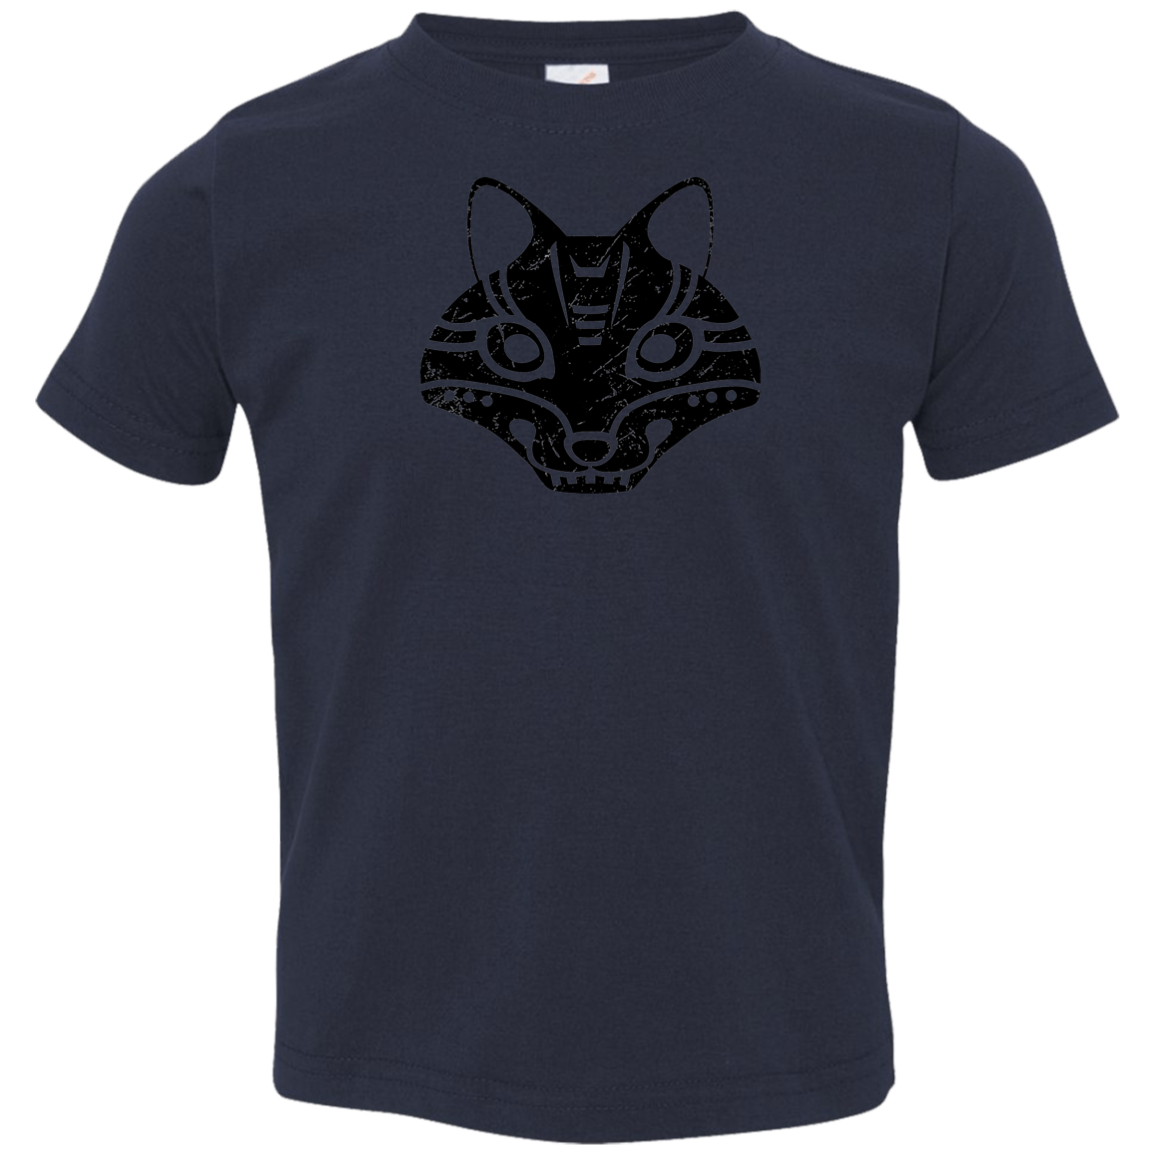 Black Distressed Emblem T-Shirts for Toddlers (Fox/Sly) - Dark Corps